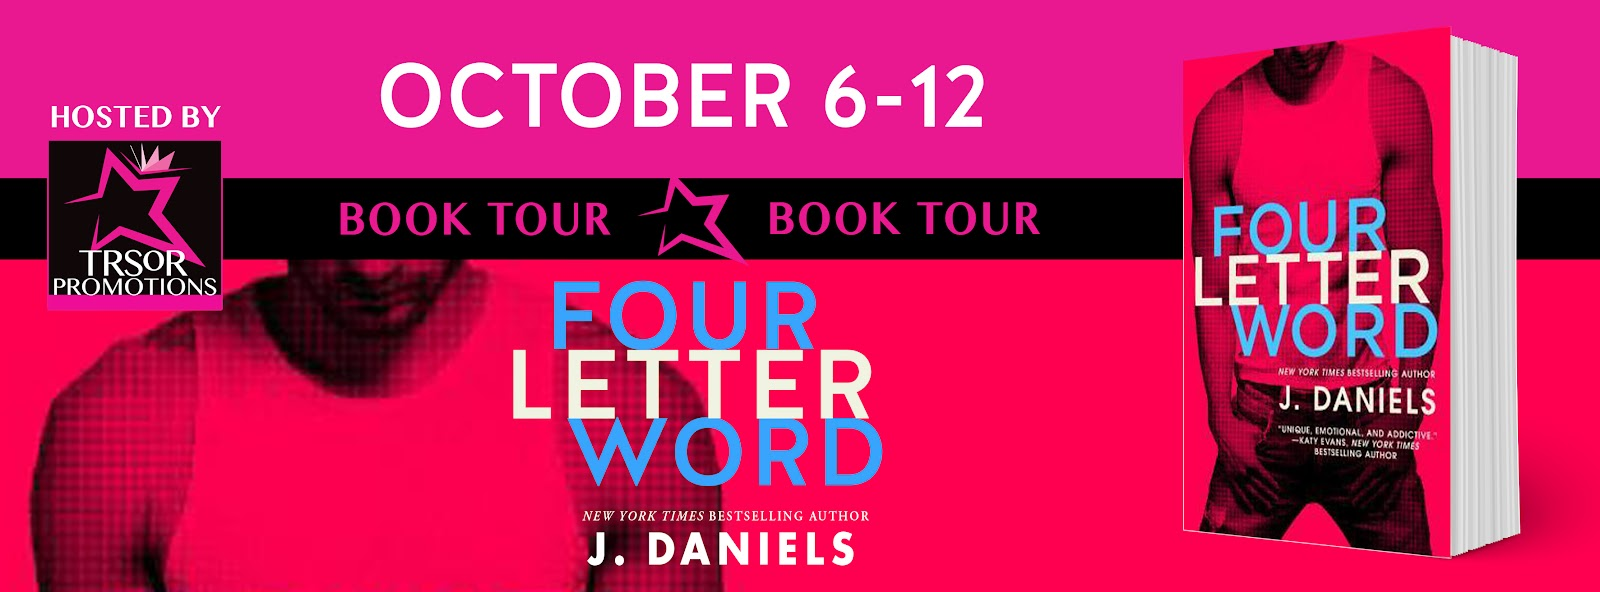 Book Tour Four Letter Word By J Daniels